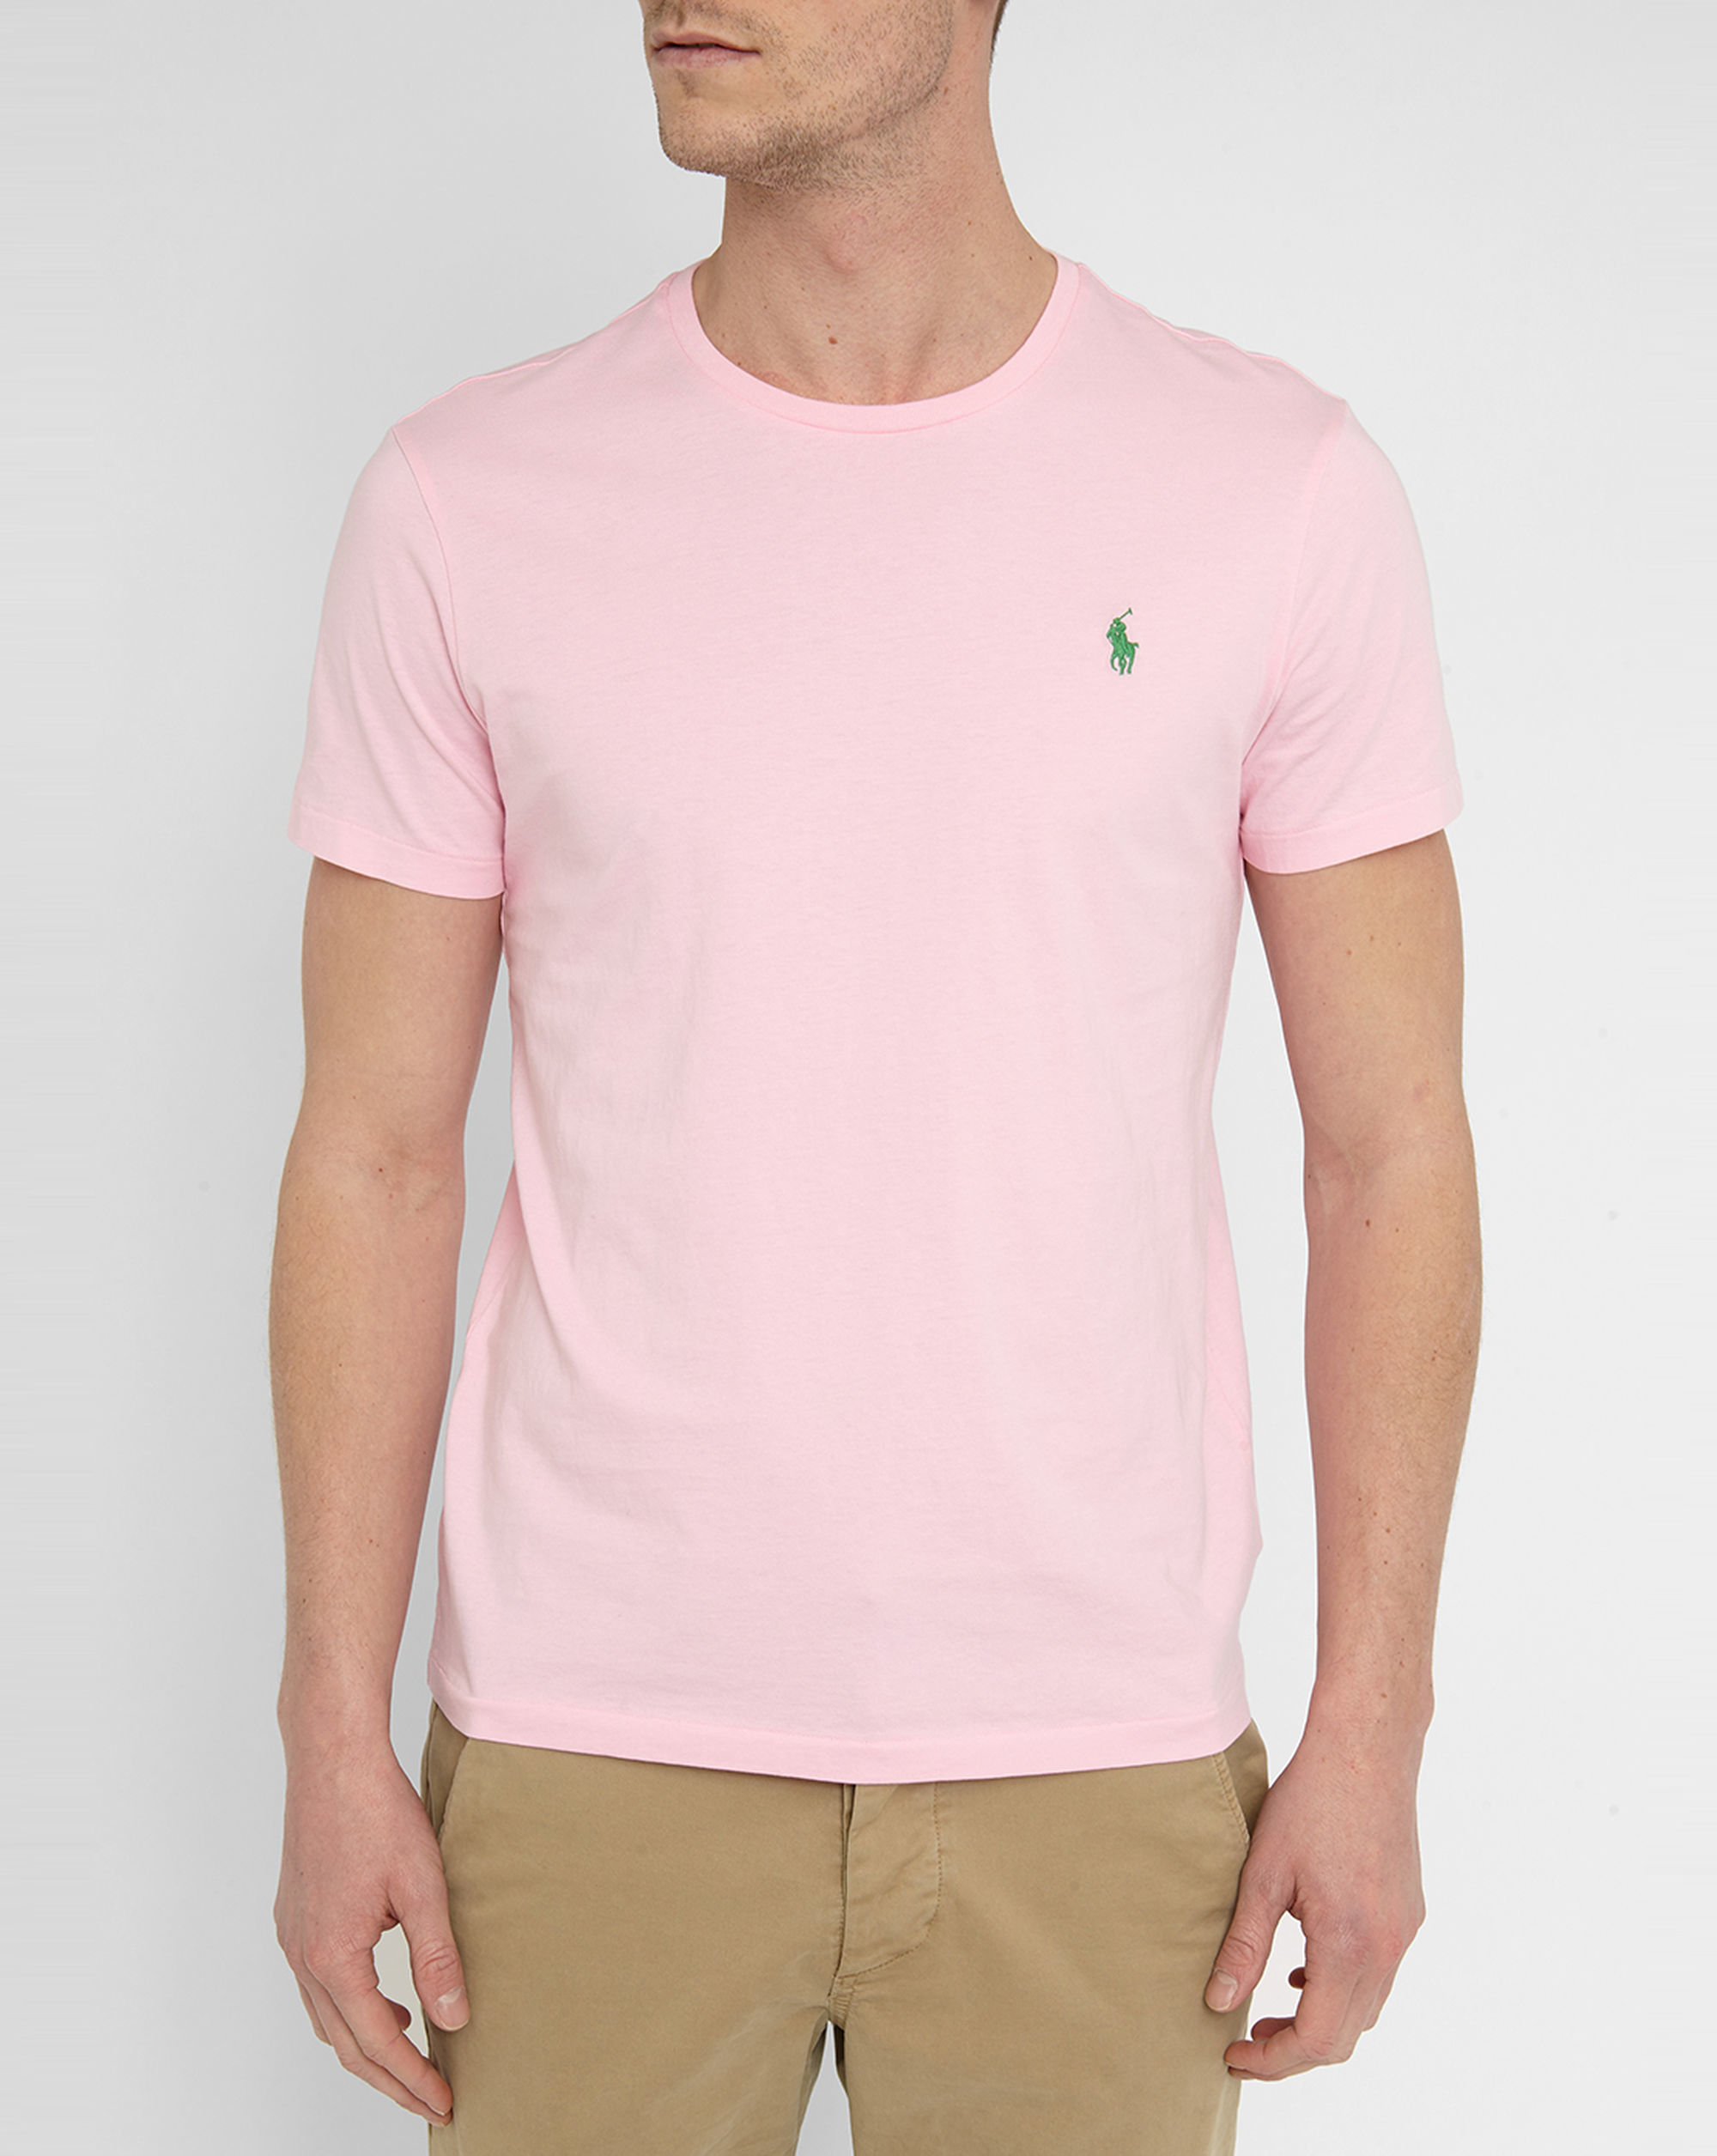 polo ralph lauren pink classic logo t shirt in pink for men lyst. Black Bedroom Furniture Sets. Home Design Ideas